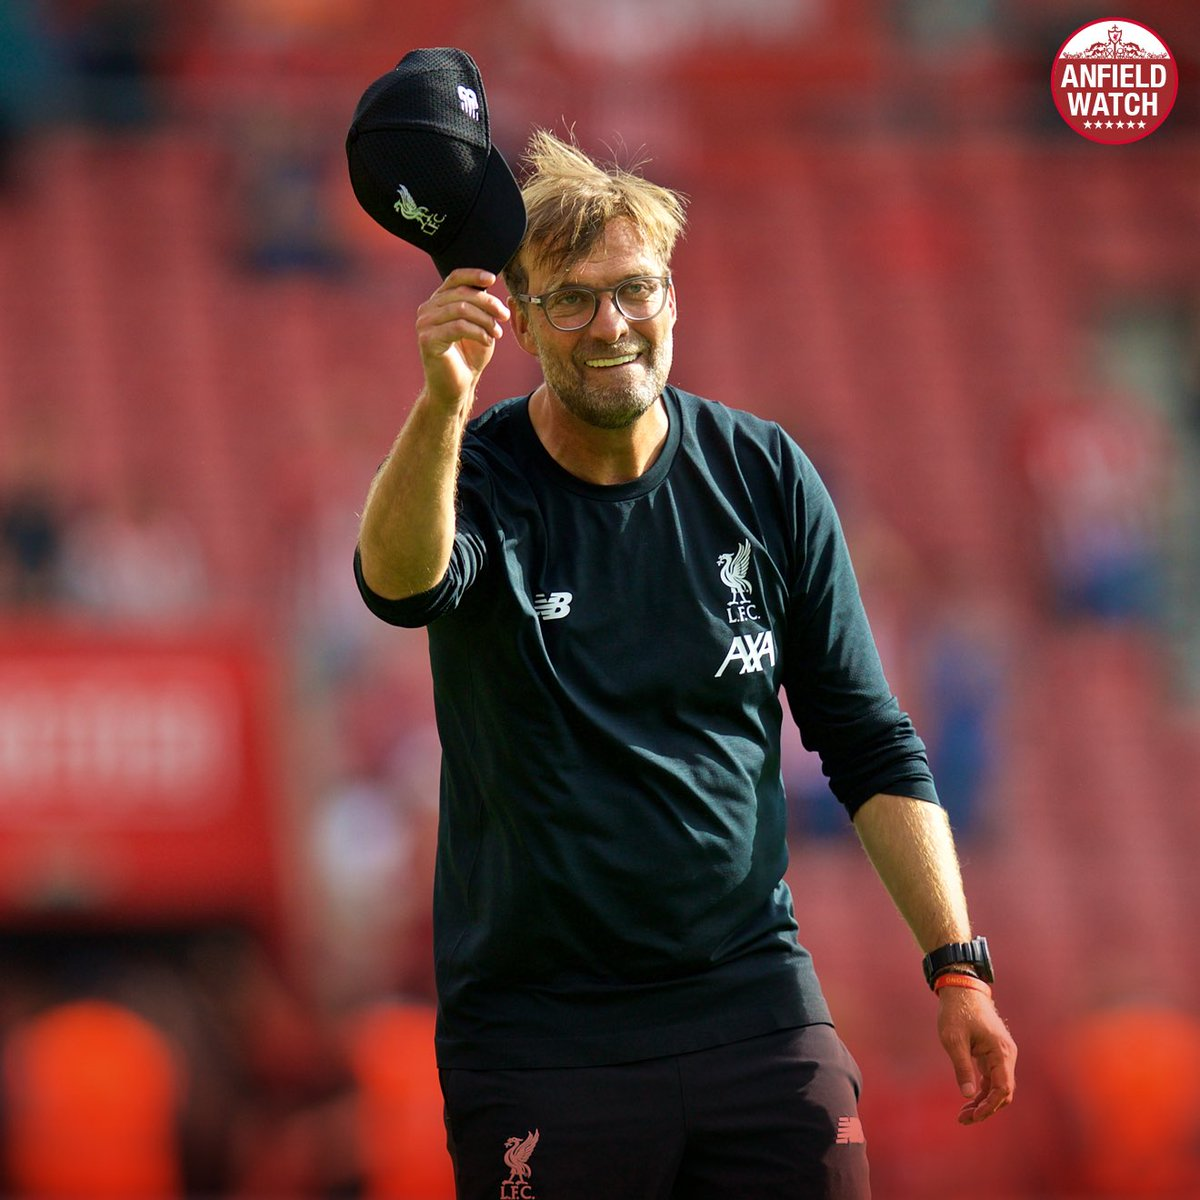 """Jurgen Klopp: """"When you first see it, you think somebody had the idea to give us Leeds, Chelsea, Arsenal and Villa before Everton. It's a tough one. But go through the Premier League and replace those teams with five other names and tell me what's easier?"""" #awlfc [liverpool echo] https://t.co/hduGlOAKWY"""